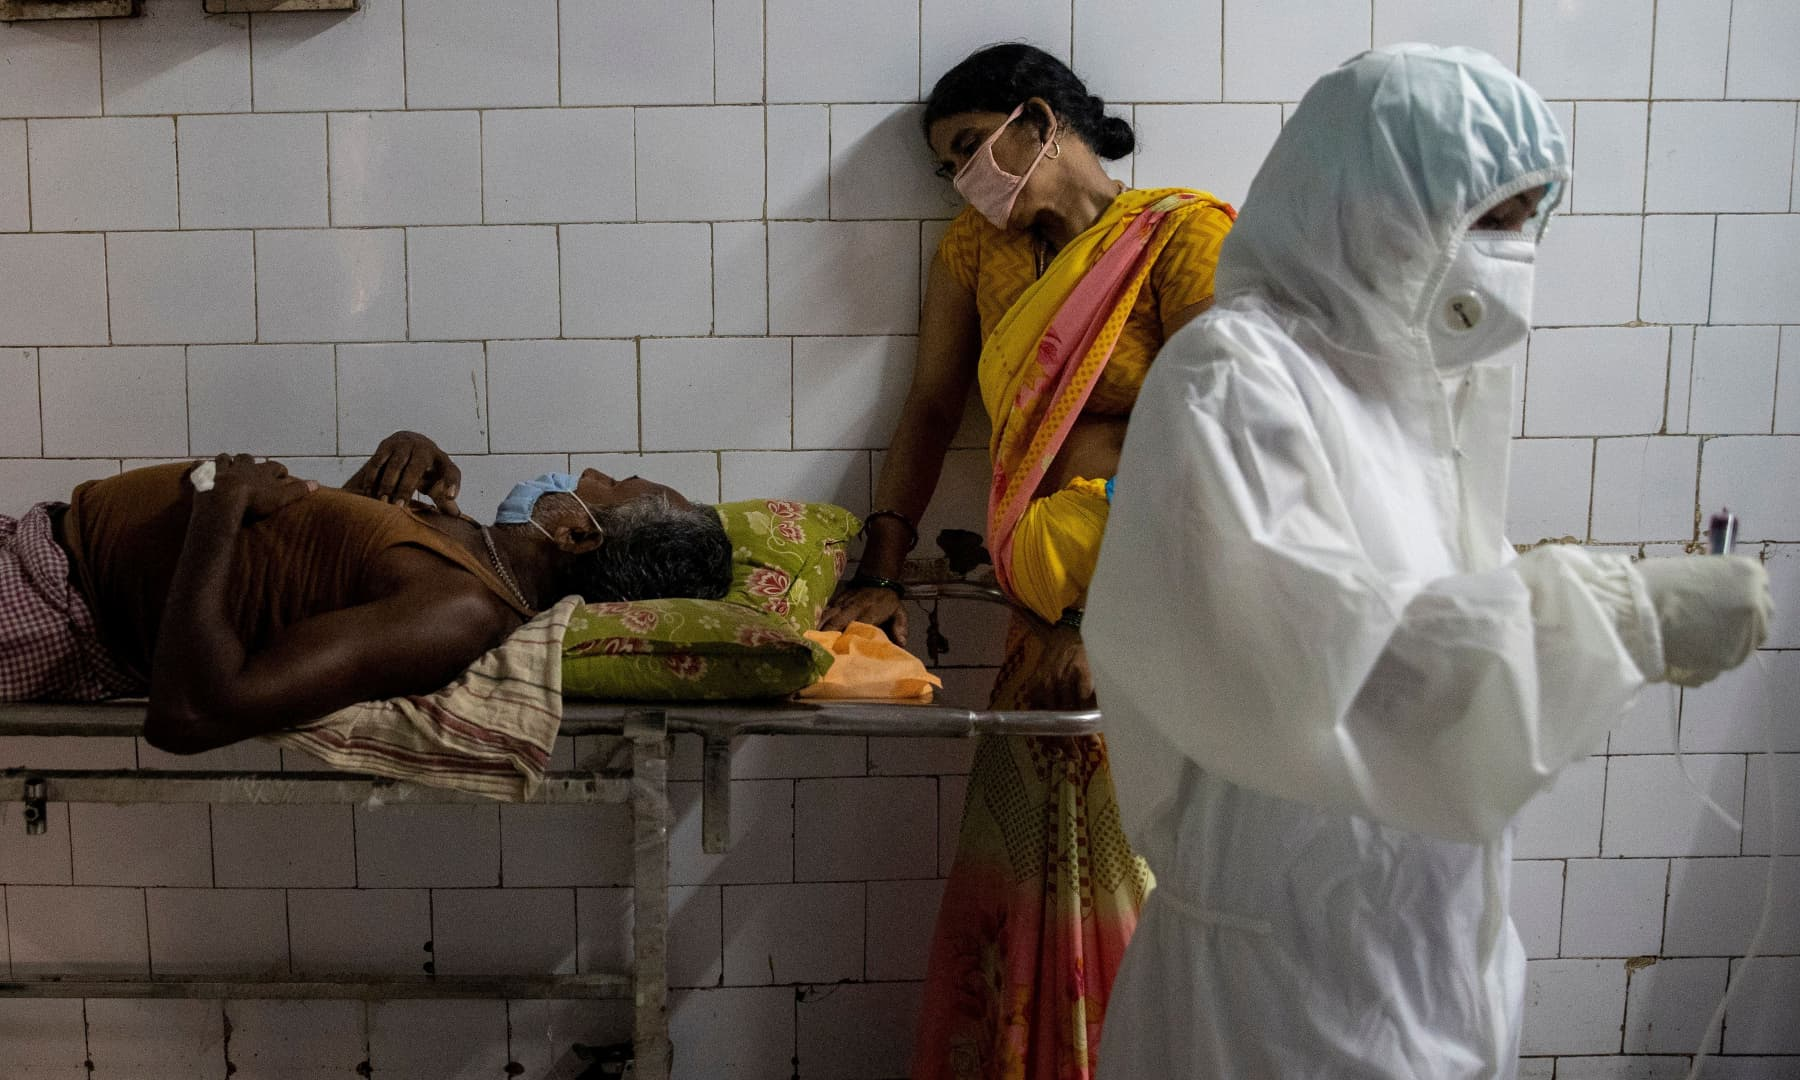 A woman leans against a stretcher holding her husband in the corridor of the emergency ward of Jawahar Lal Nehru Medical College and Hospital, during the coronavirus outbreak in Bhagalpur, in the eastern state of Bihar, India, July 27, 2020. — Reuters/Danish Siddiqui